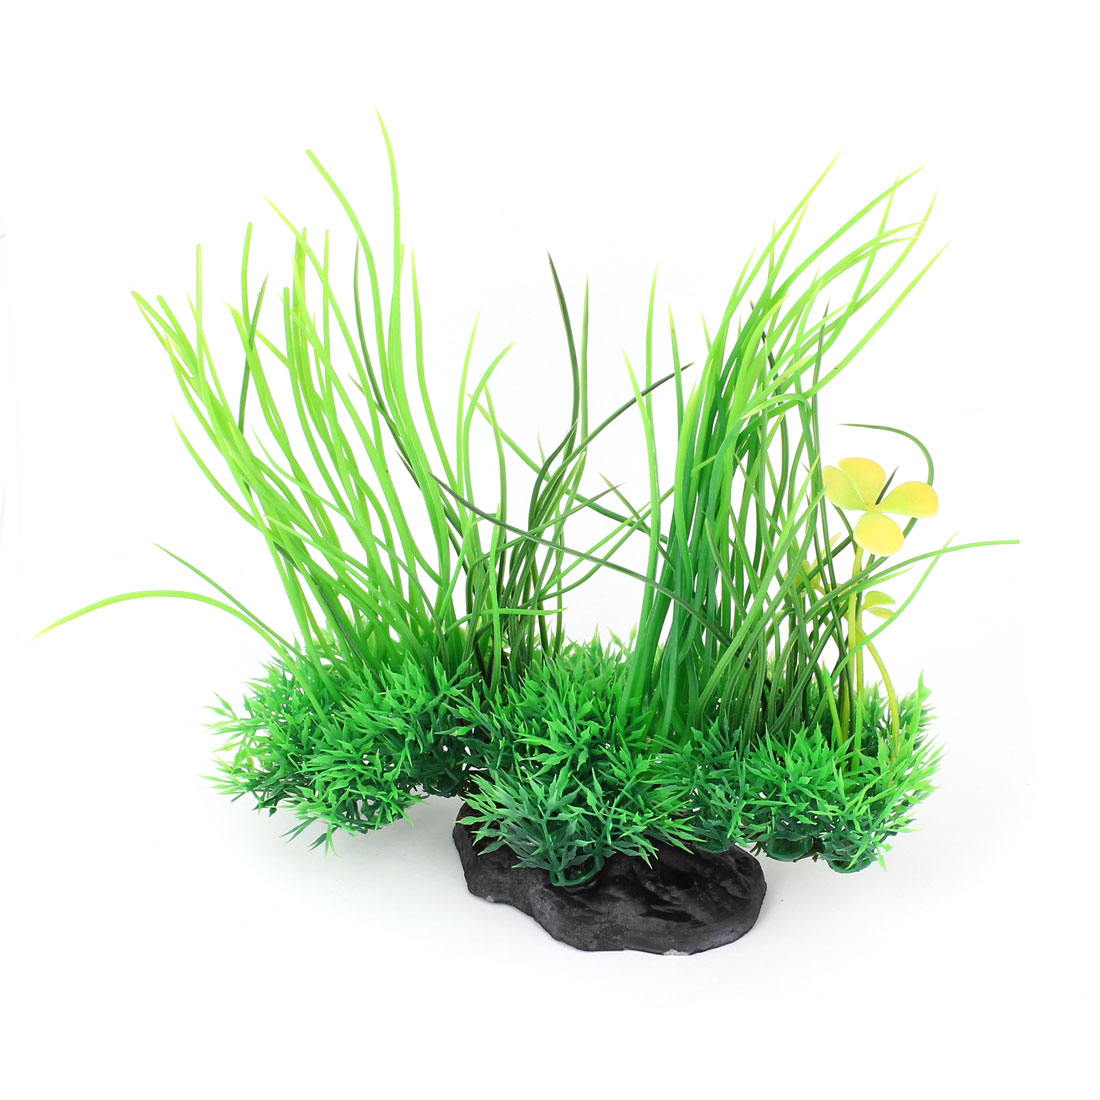 "Aquarium Flower Decor Simulation Plastic Aquatic Plant Green 7.5"" High 2 Pcs"